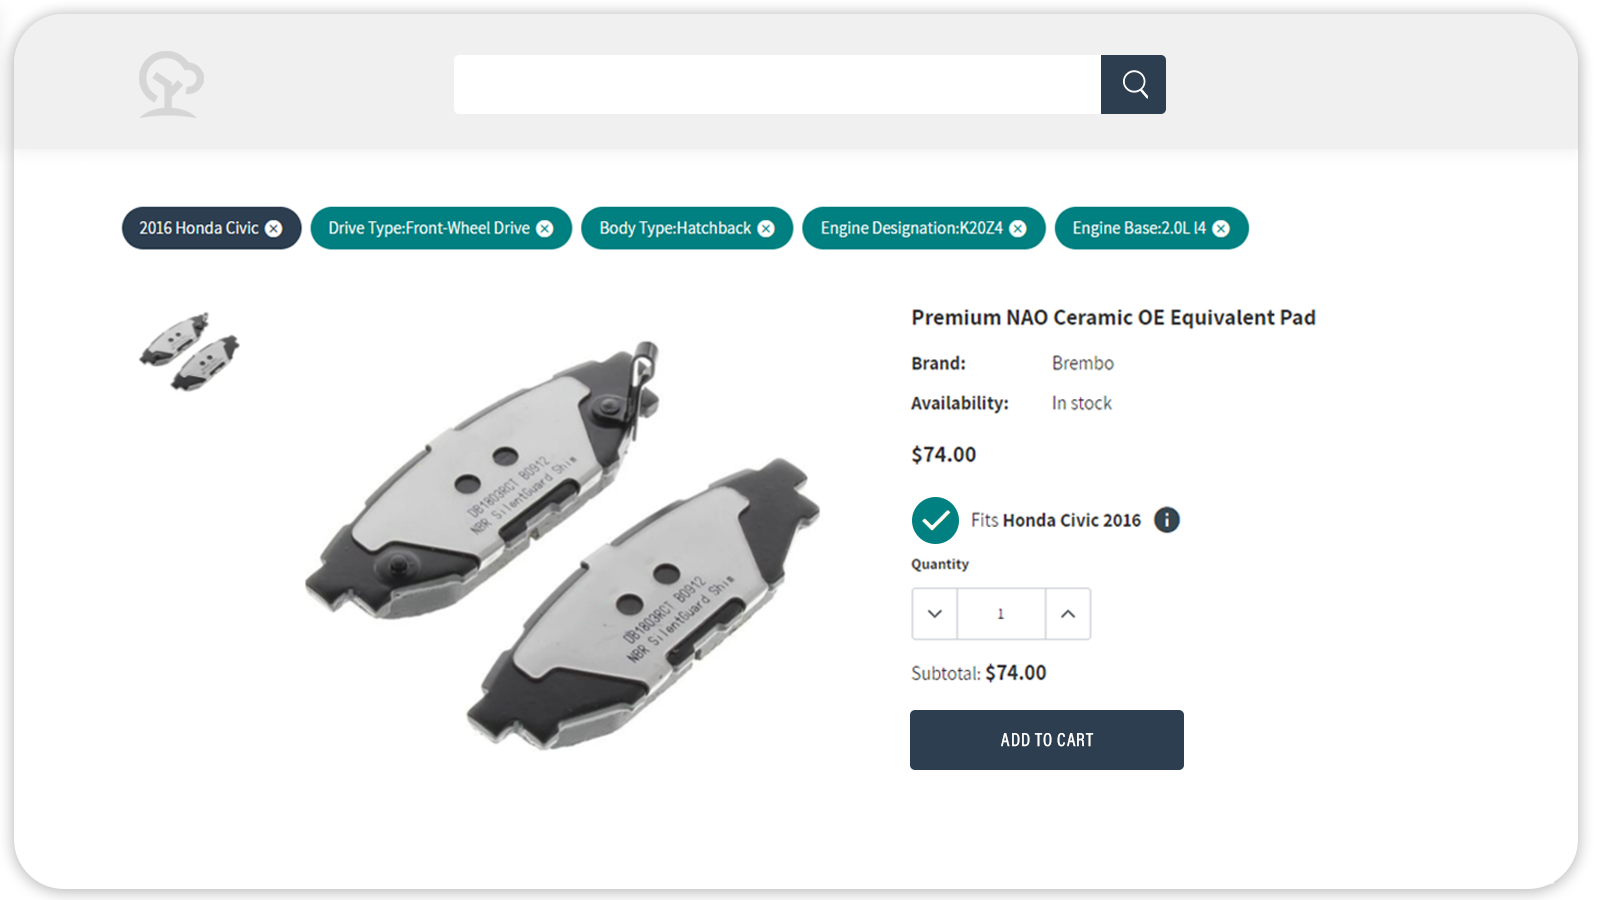 Product page of auto parts manufacturers website